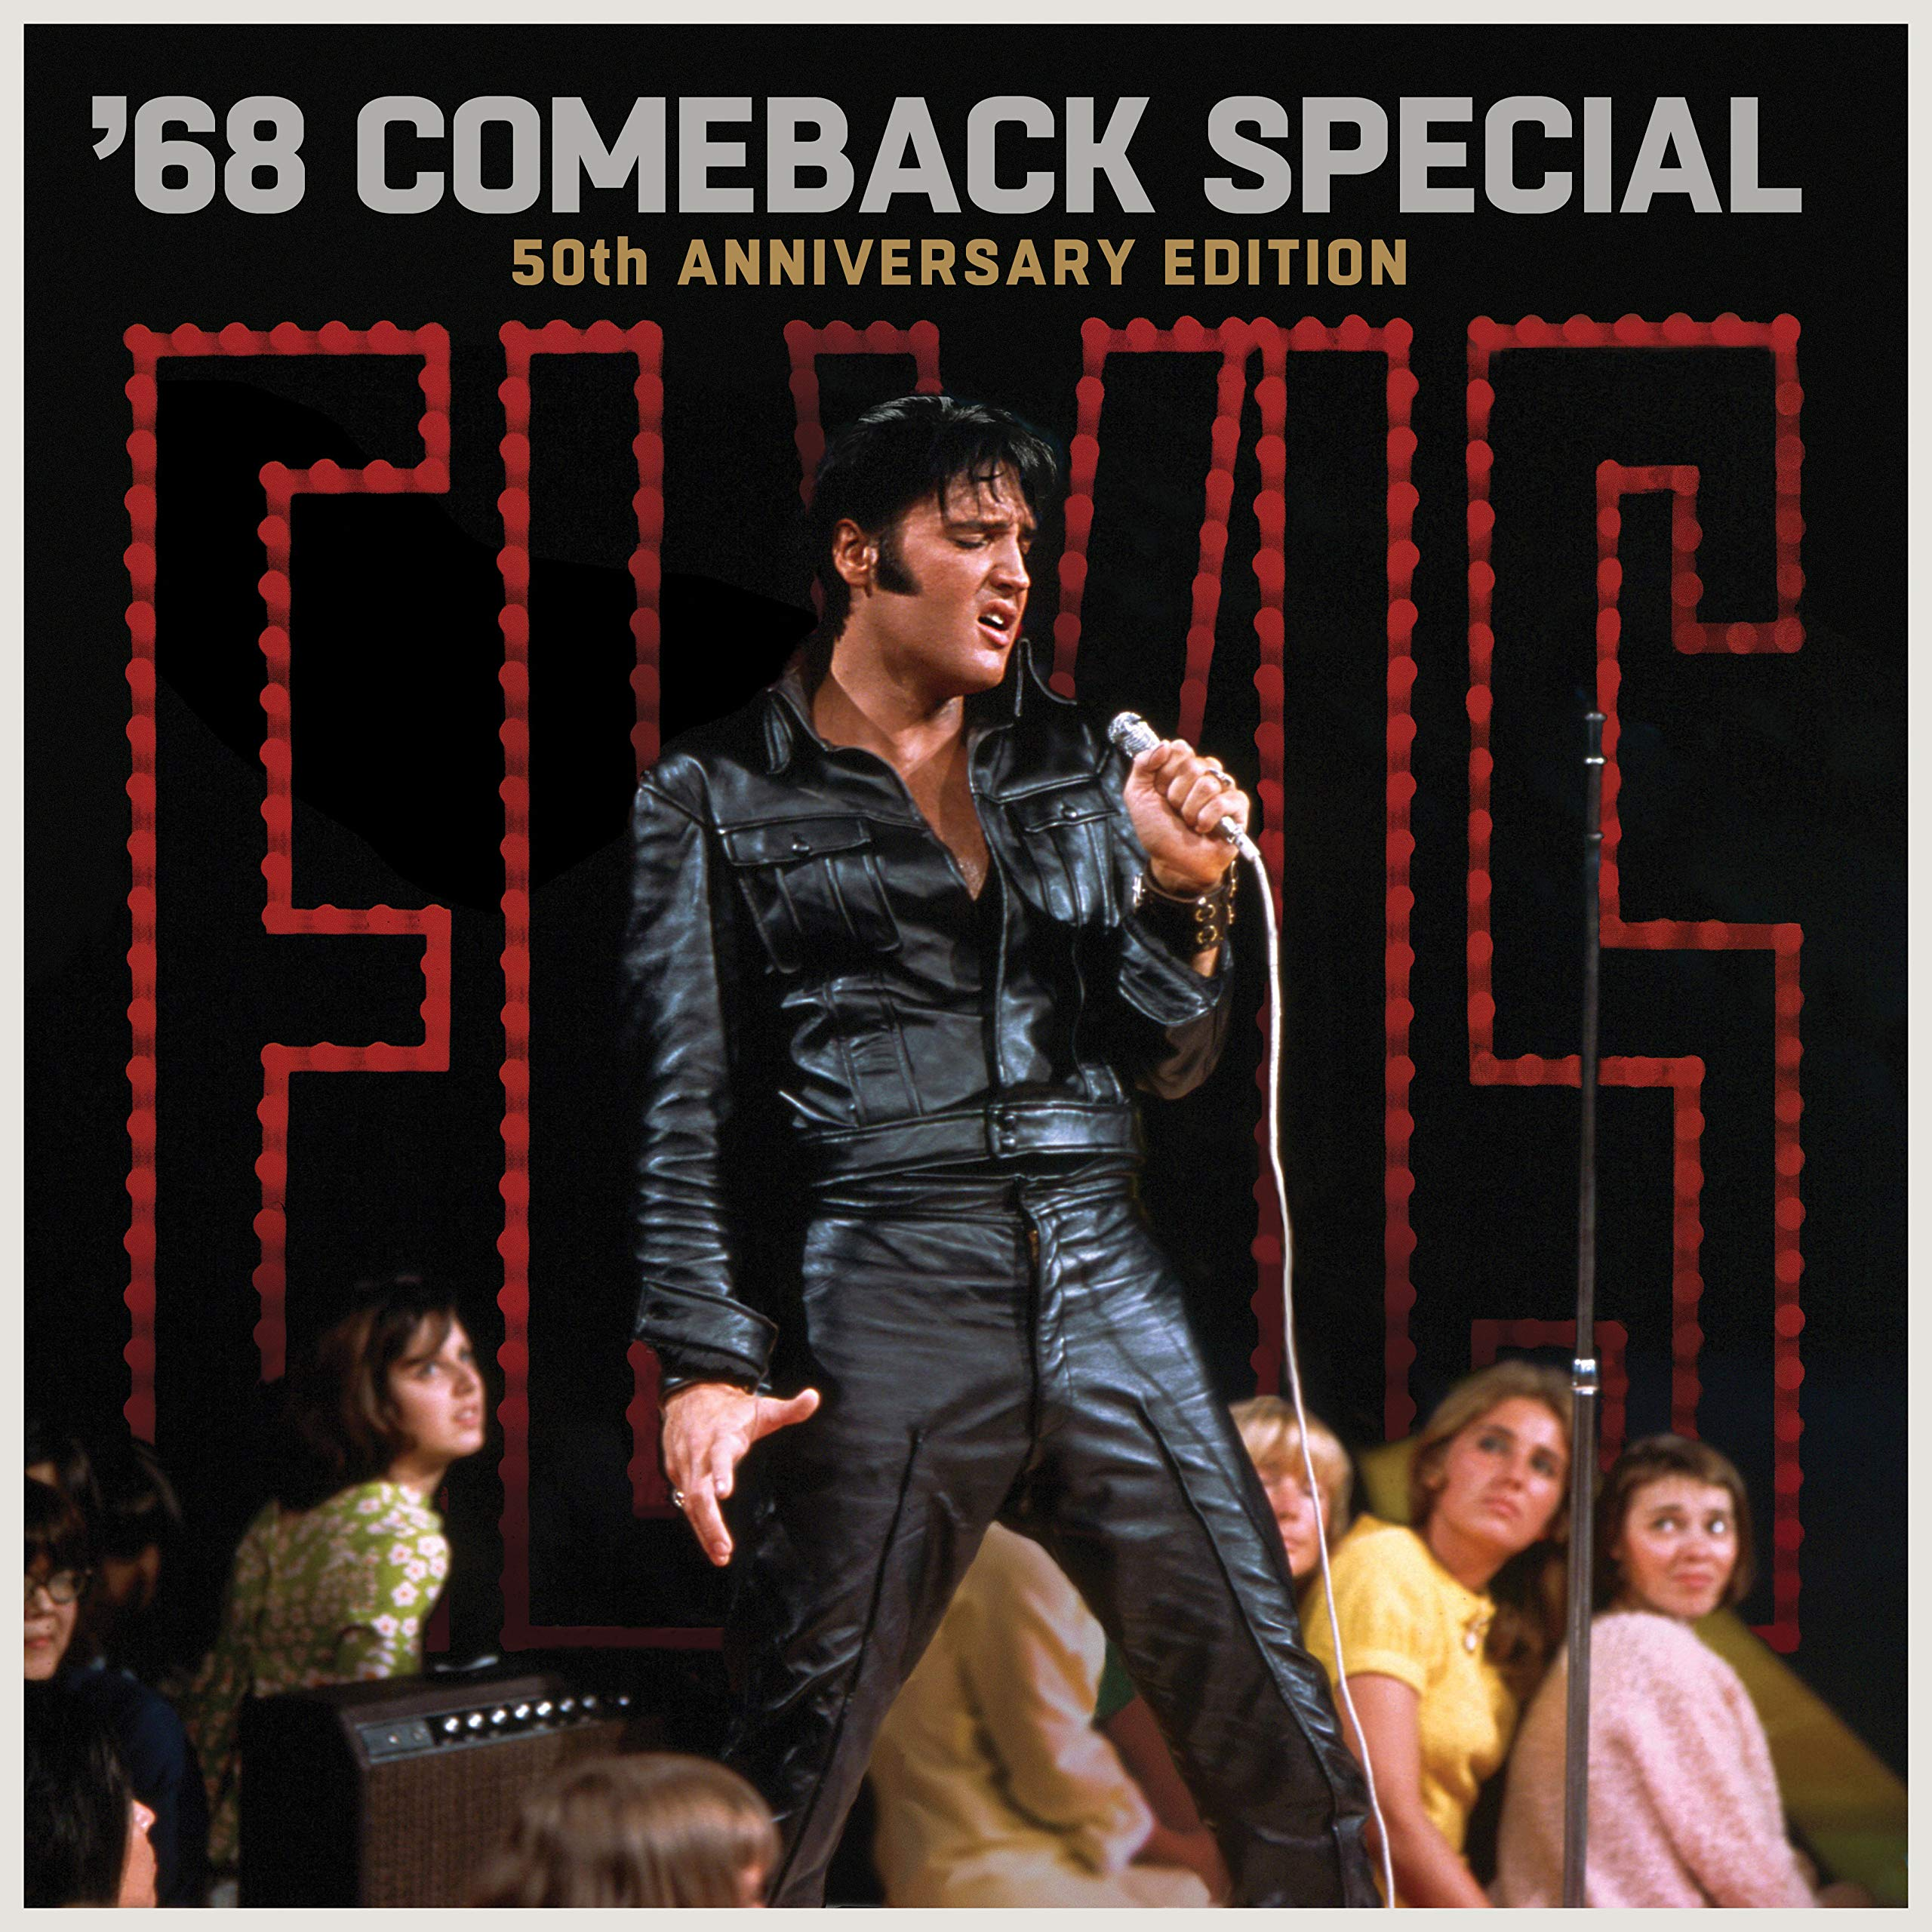 Elvis Presley - 68 Comeback Special (50th Anniversary Edition) (With Blu-ray, With Booklet, Boxed Set, Anniversary Edition)